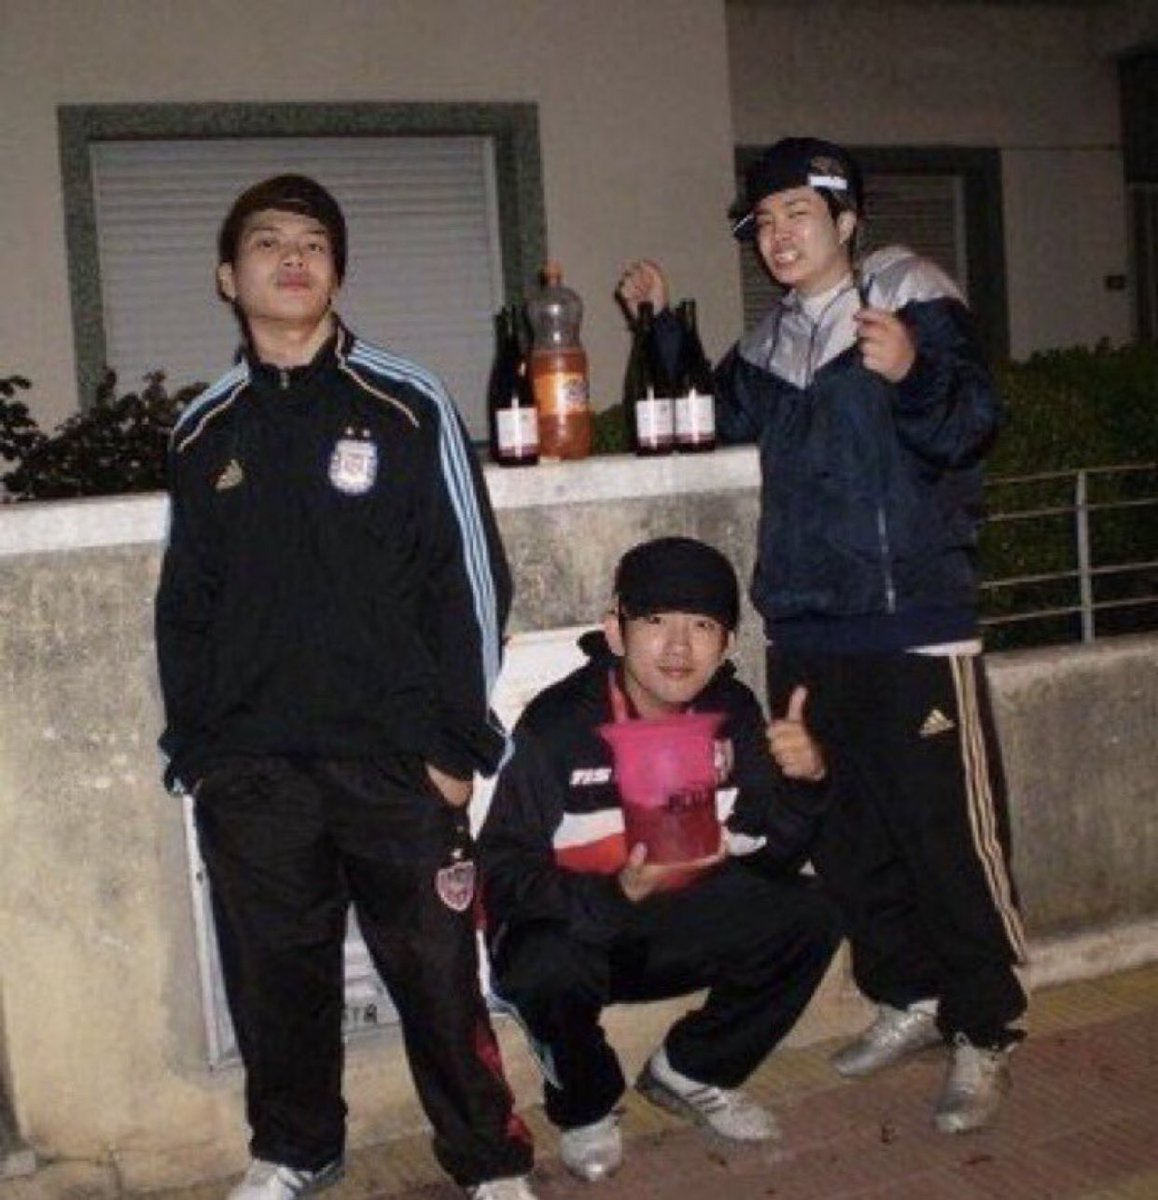 bringing back this photo of the non existent superior got7 unit <br>http://pic.twitter.com/UyVR3sujhi